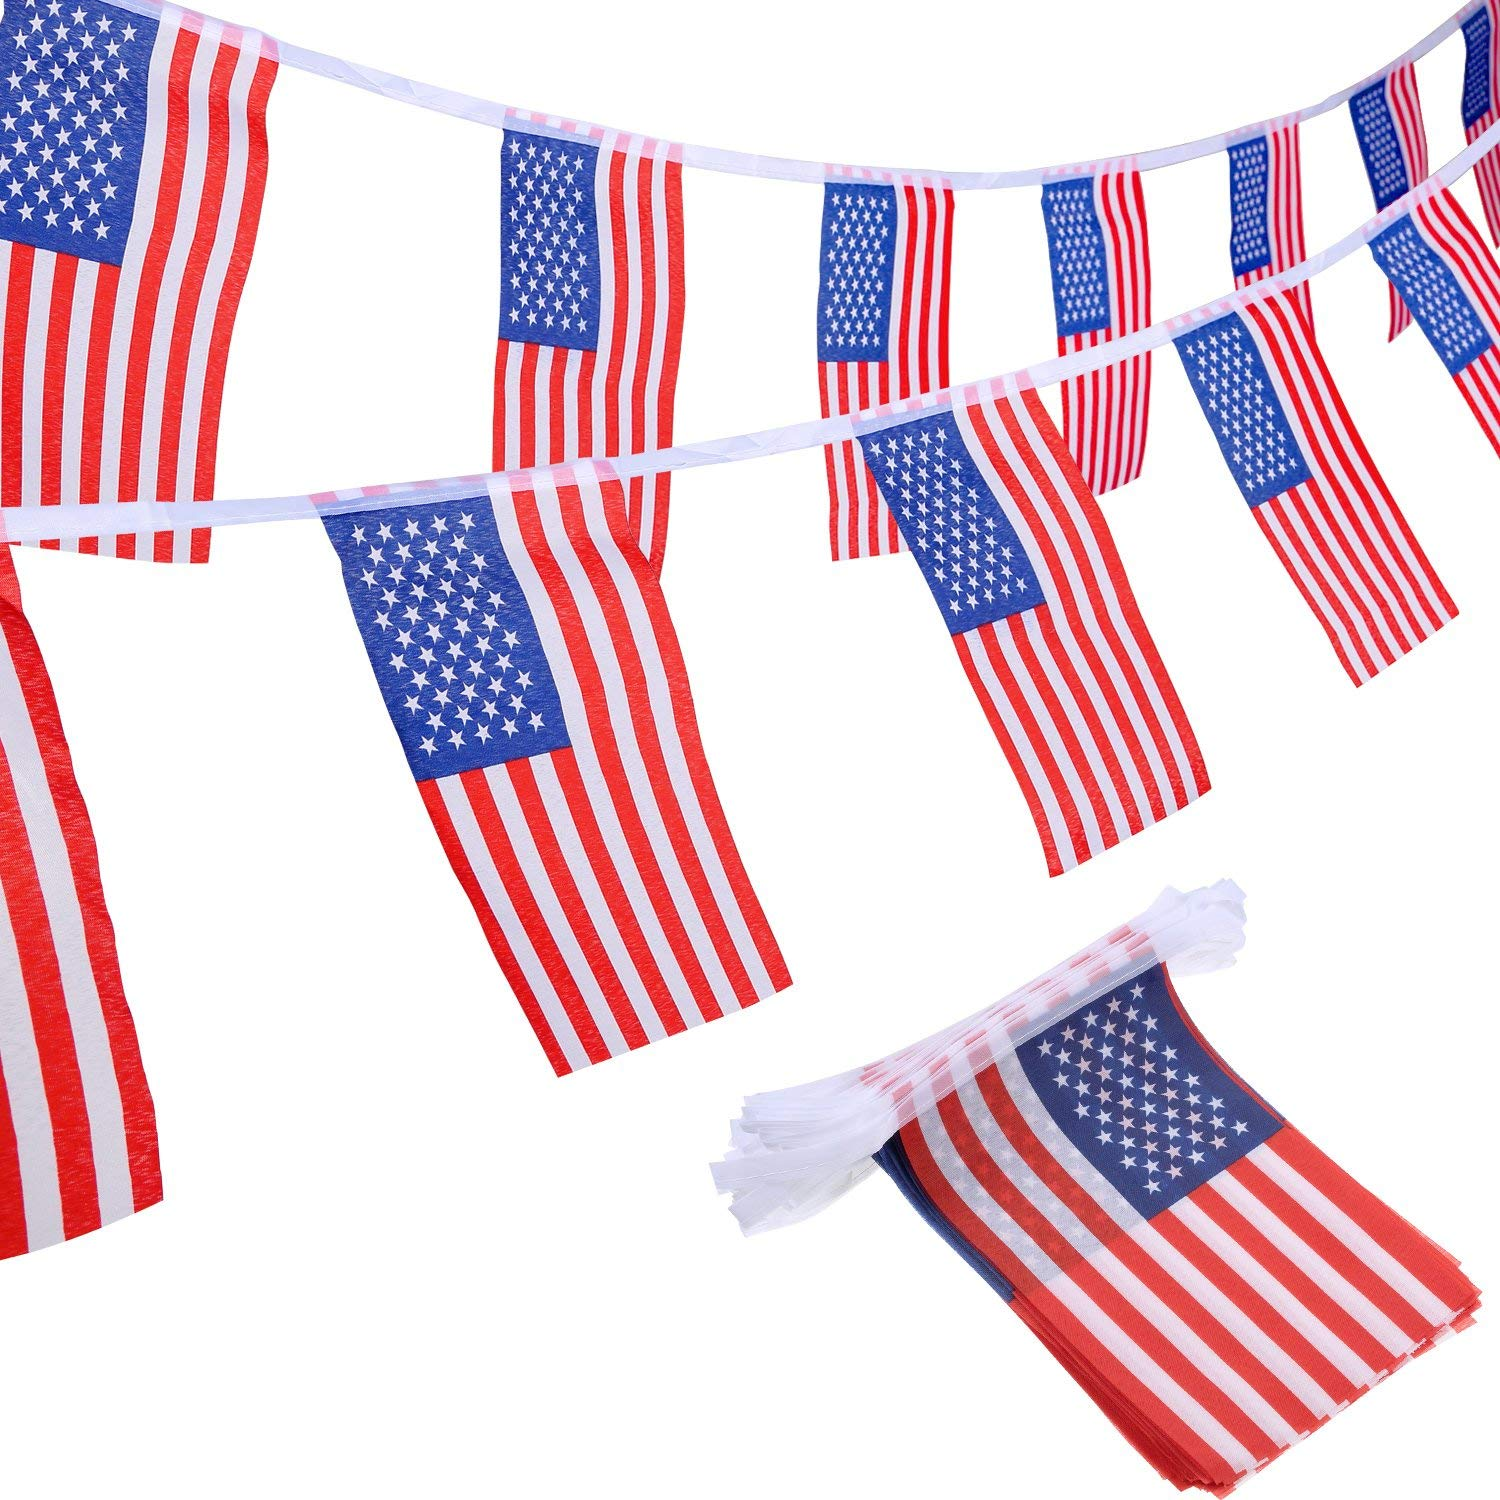 Jovitec 100 American Bunting Flags Banner String USA Pennant Flags Stars Stripes Flags 4th July, Memorial Day, Veterans Day, Independence Day, Labor Day, Flag Day Decorations